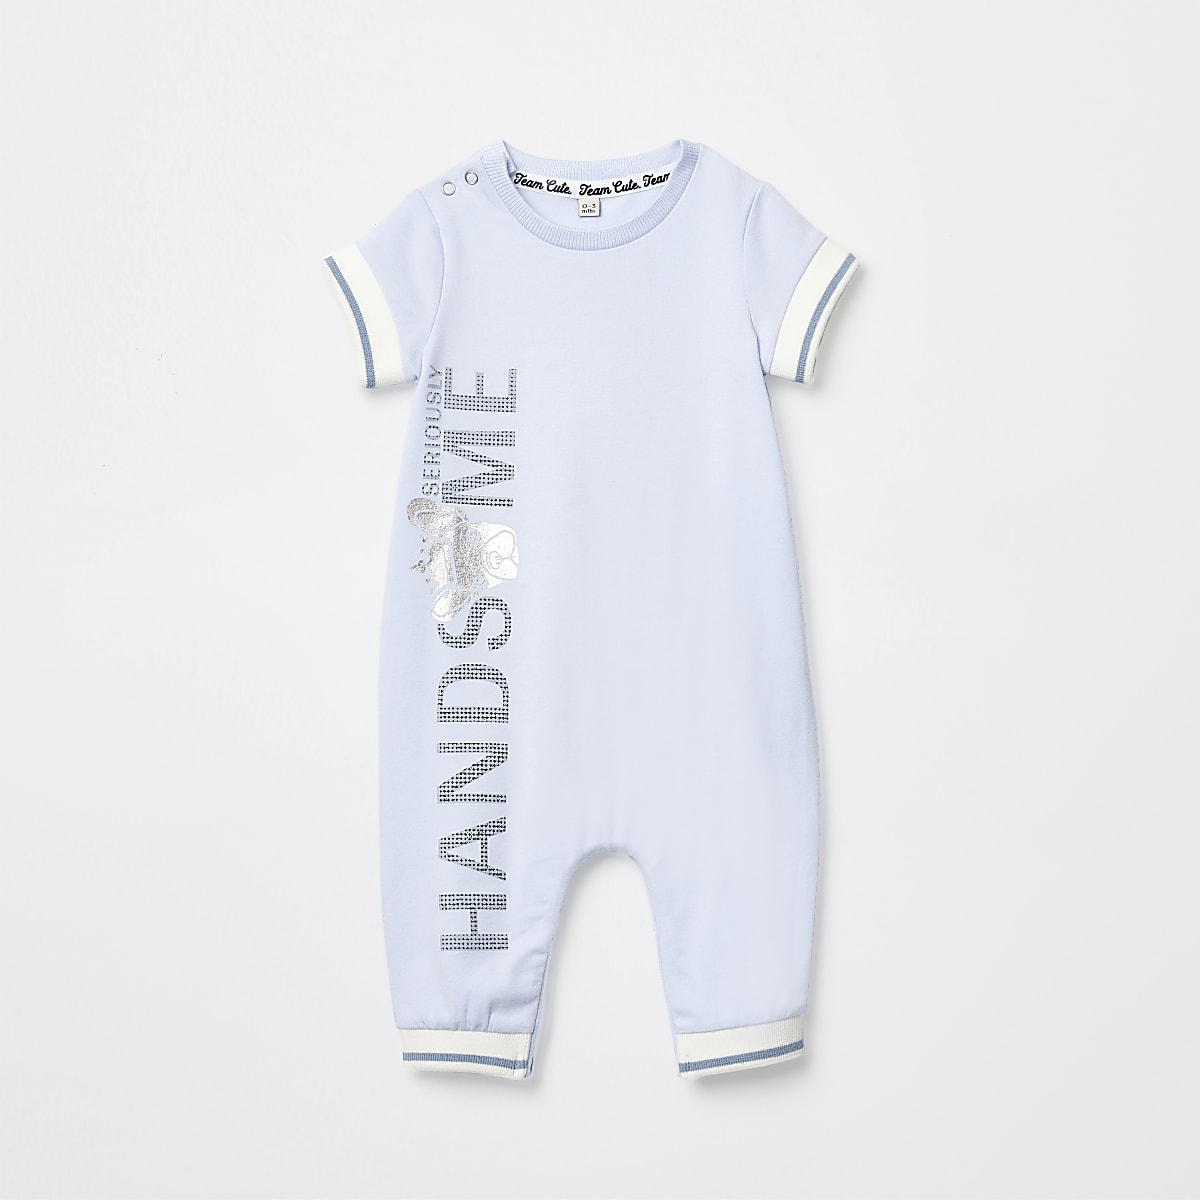 Baby blue 'Handsome' foil print baby grow